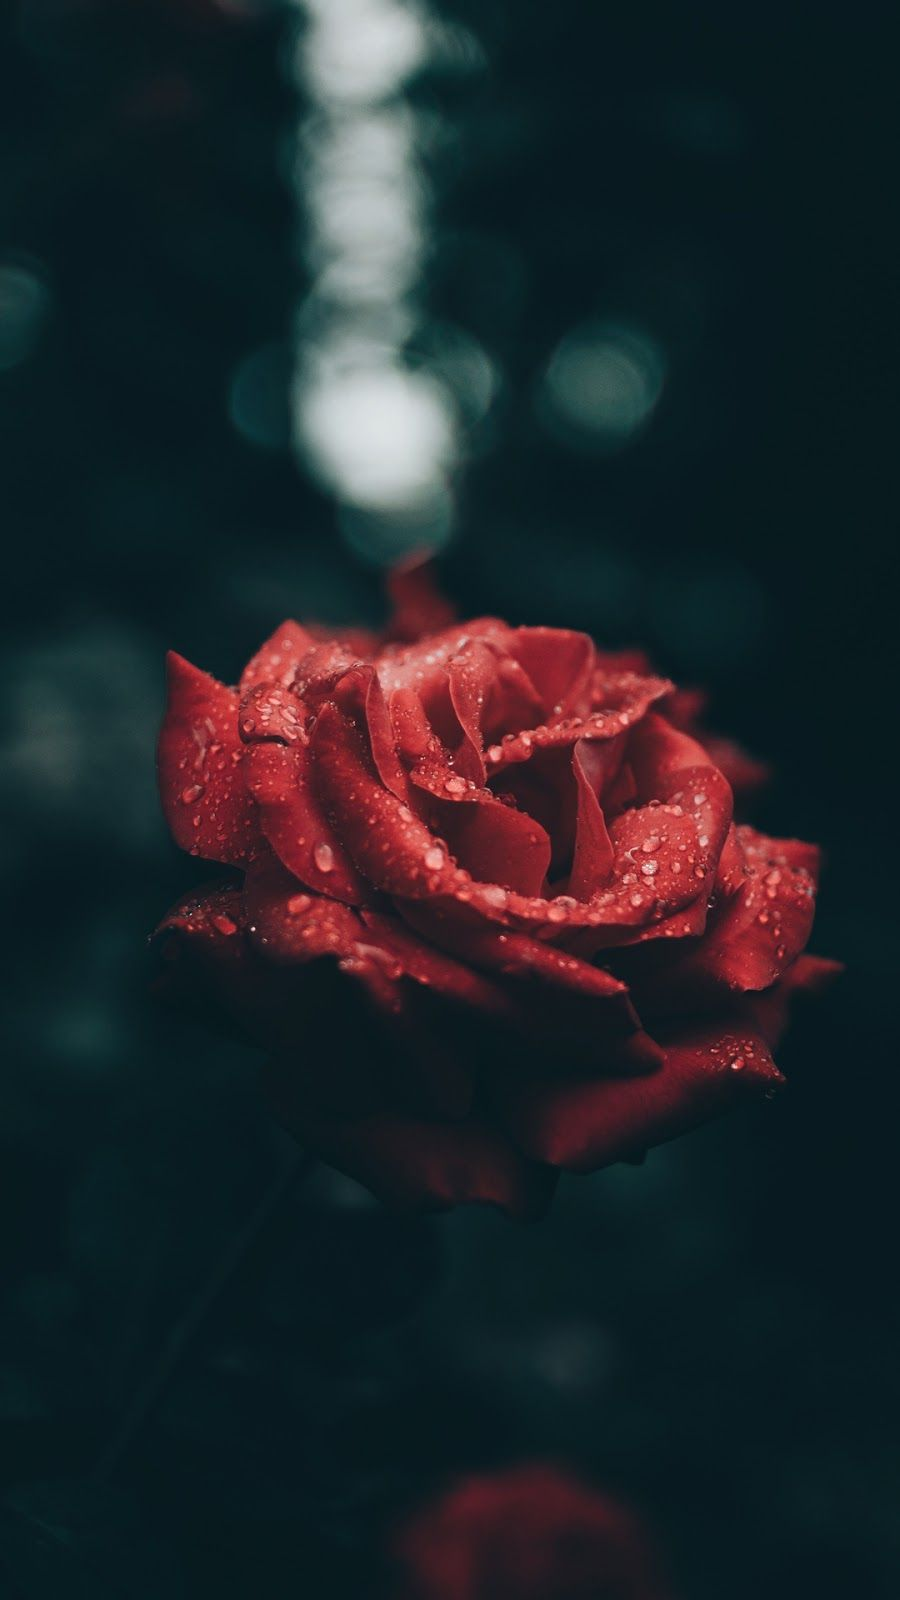 Rose And Raindrops With Images Preppy Wallpaper Wallpaper